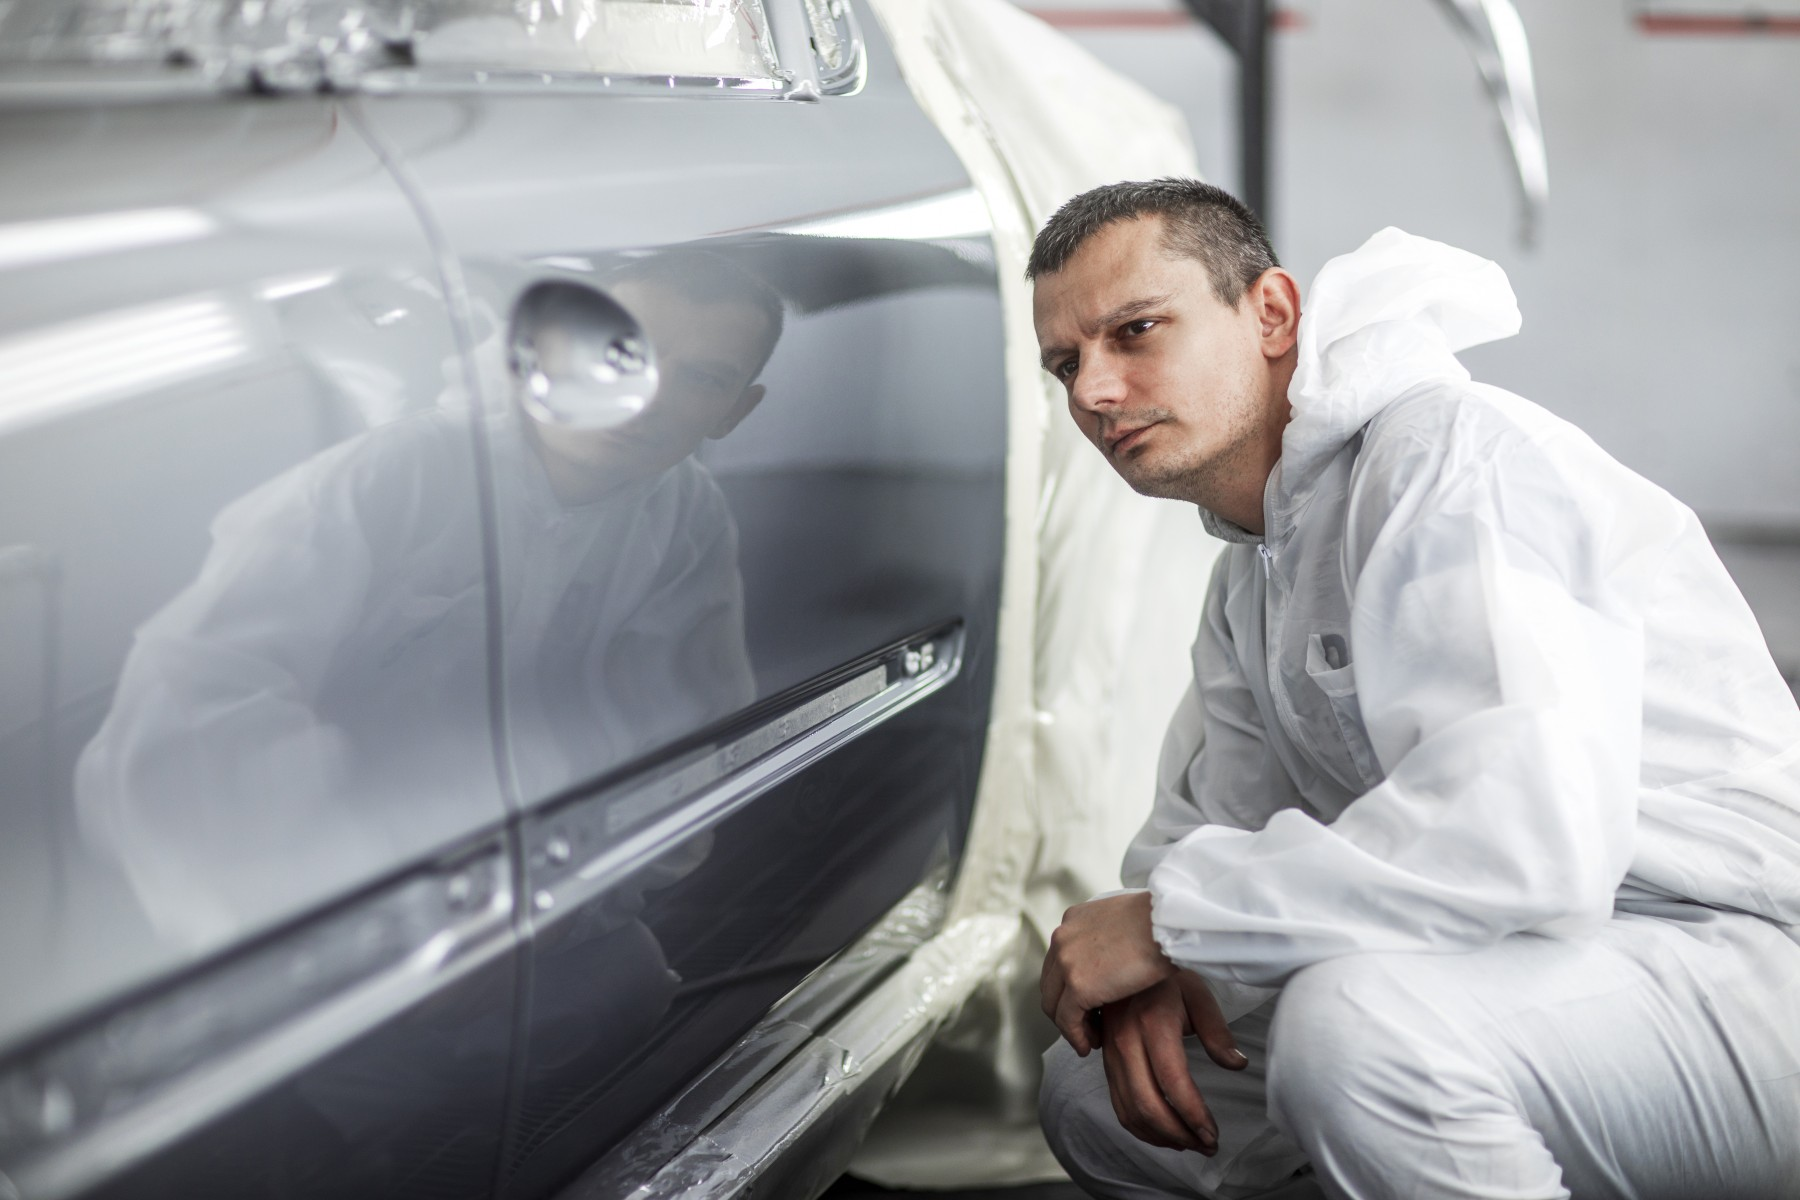 BASF refinish coatings formulated with hardeners from Covestro's Ultra line meet the highest safety standards while maintaining premium quality, including appearance. (Source: Covestro)